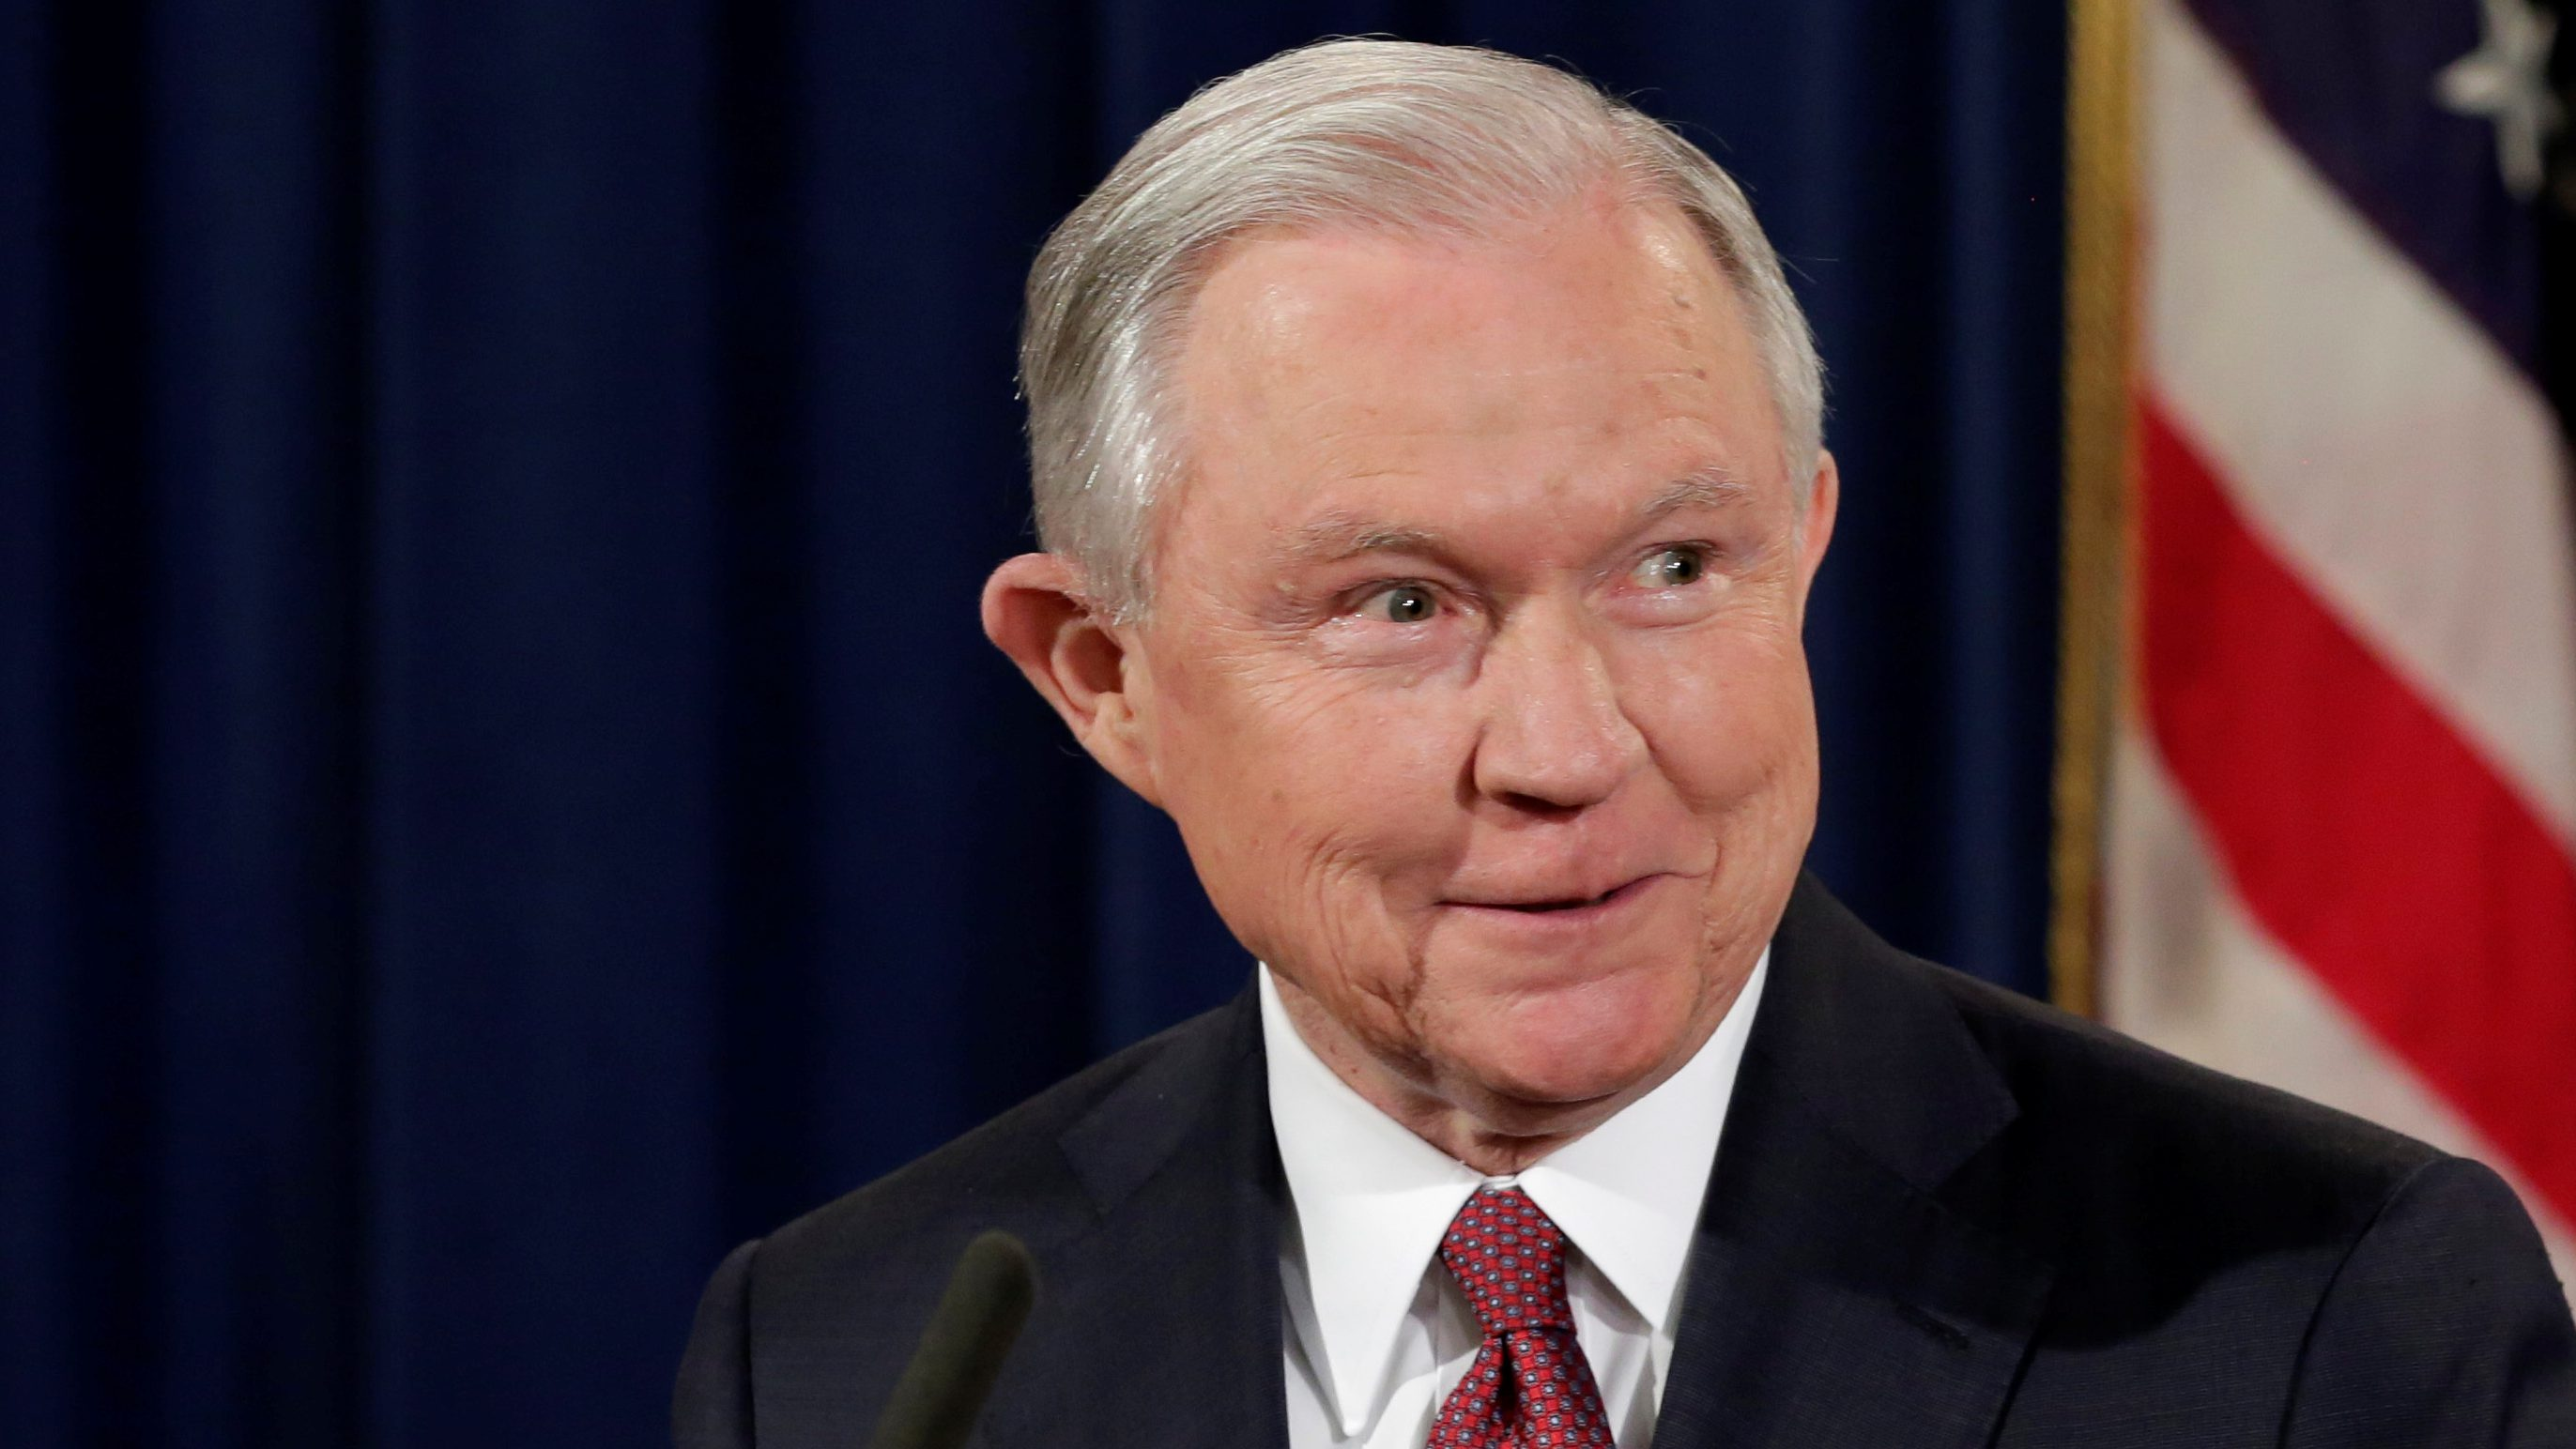 U.S. Attorney General Jeff Sessions speaks at a news conference to address the Deferred Action for Childhood Arrivals (DACA) program at the Justice Department in Washington